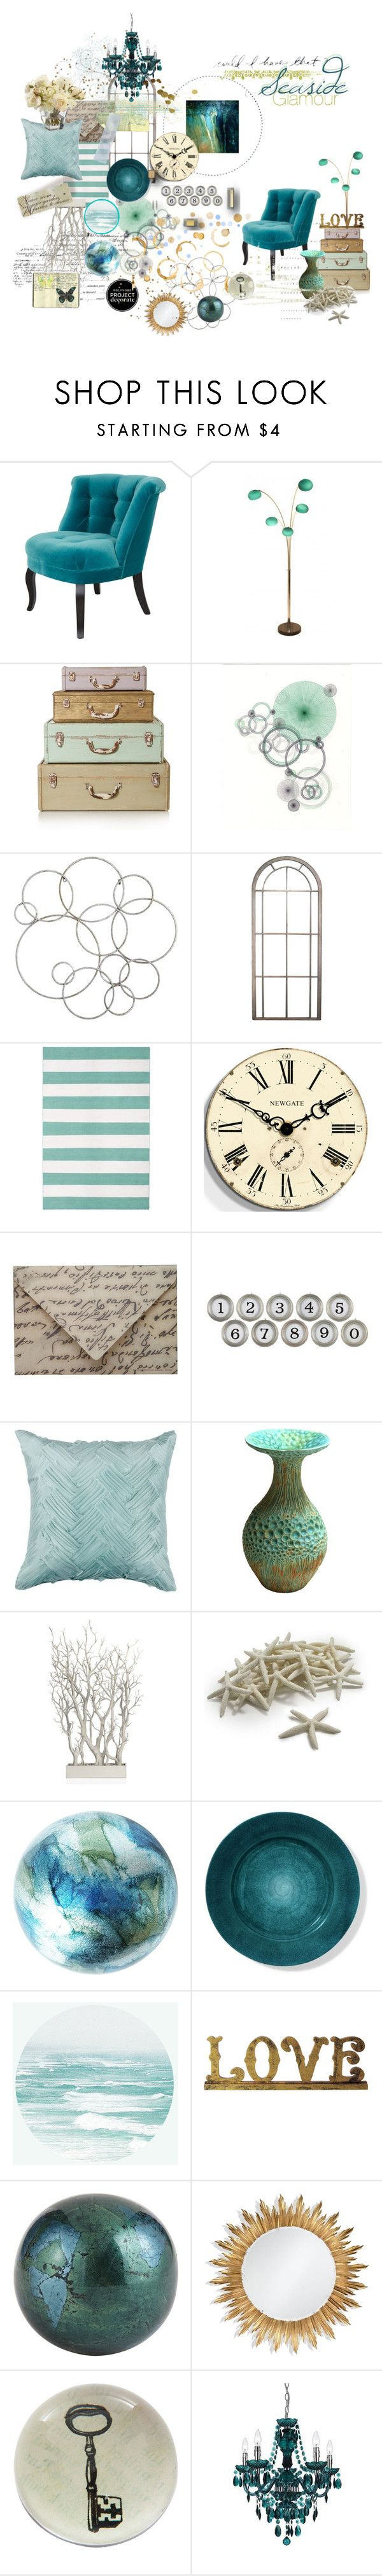 """Seaside Glamour"" by dlmusiel ❤ liked on Polyvore featuring interior, interiors, interior design, home, home decor, interior decorating, The Velvet Chair Company, Pier 1 Imports, Newgate and Fountain"